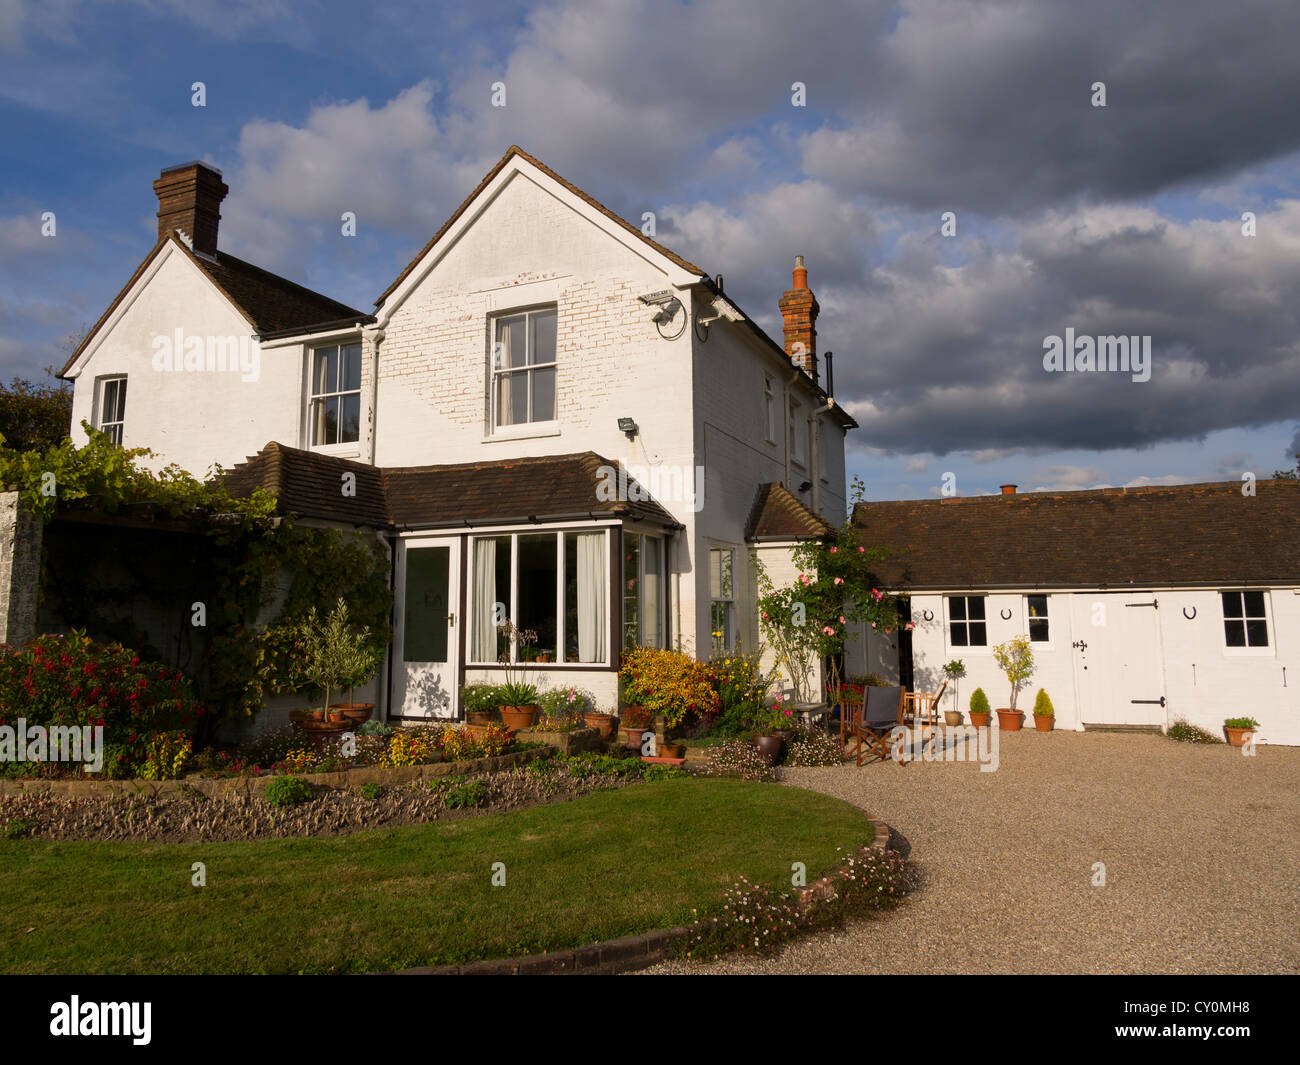 Victorian Country House In Sussex A Typical White Painted Brick With Historic Outbuildings And Pretty Garden